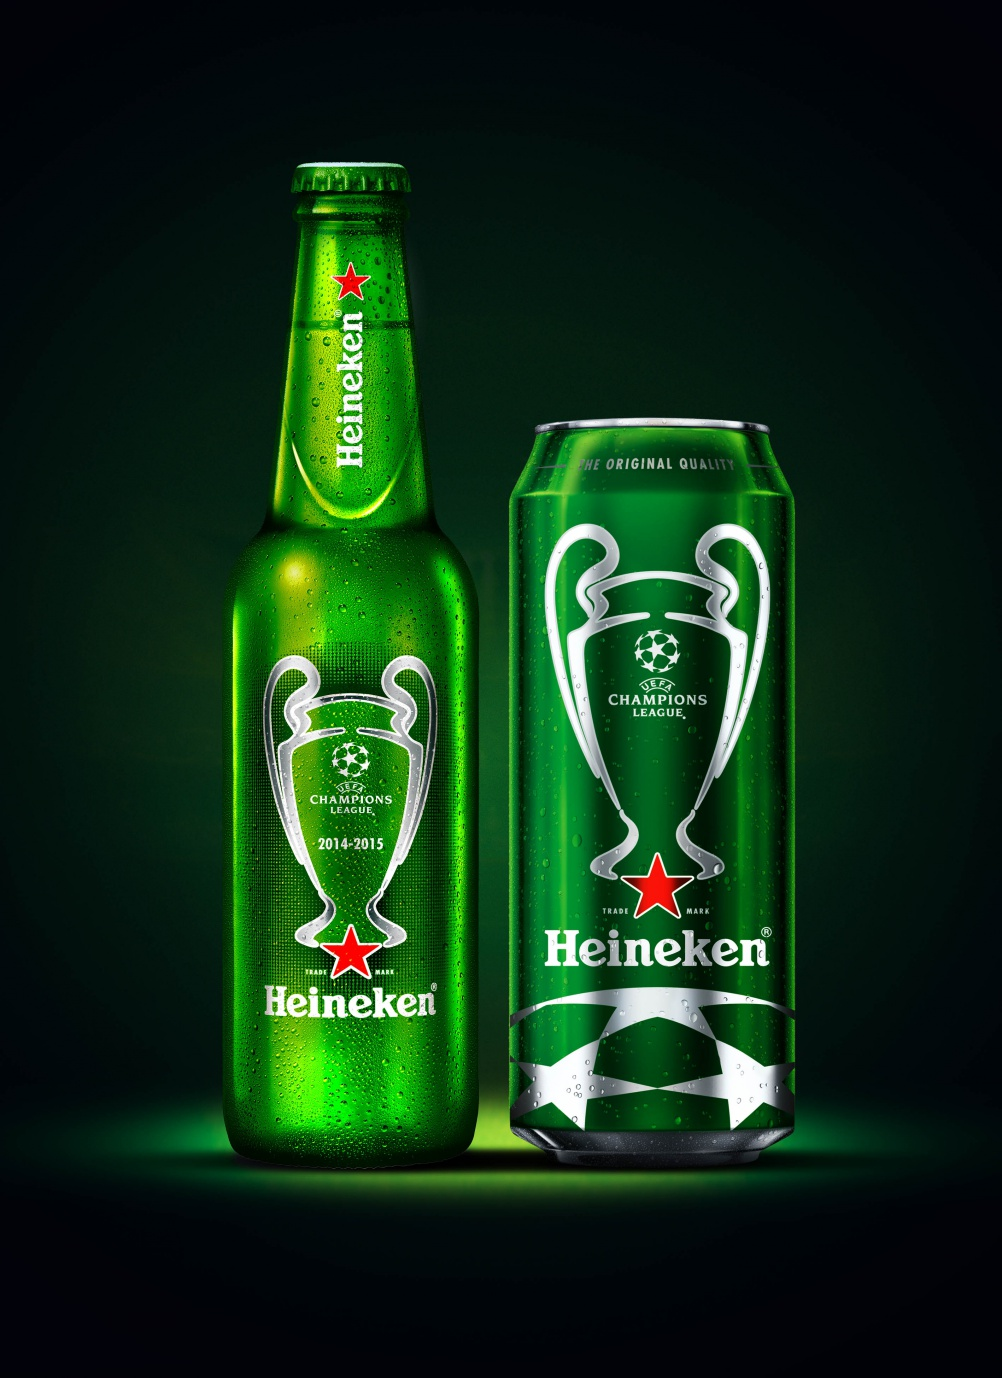 Heineken Champions League packaging, by Bulletproof